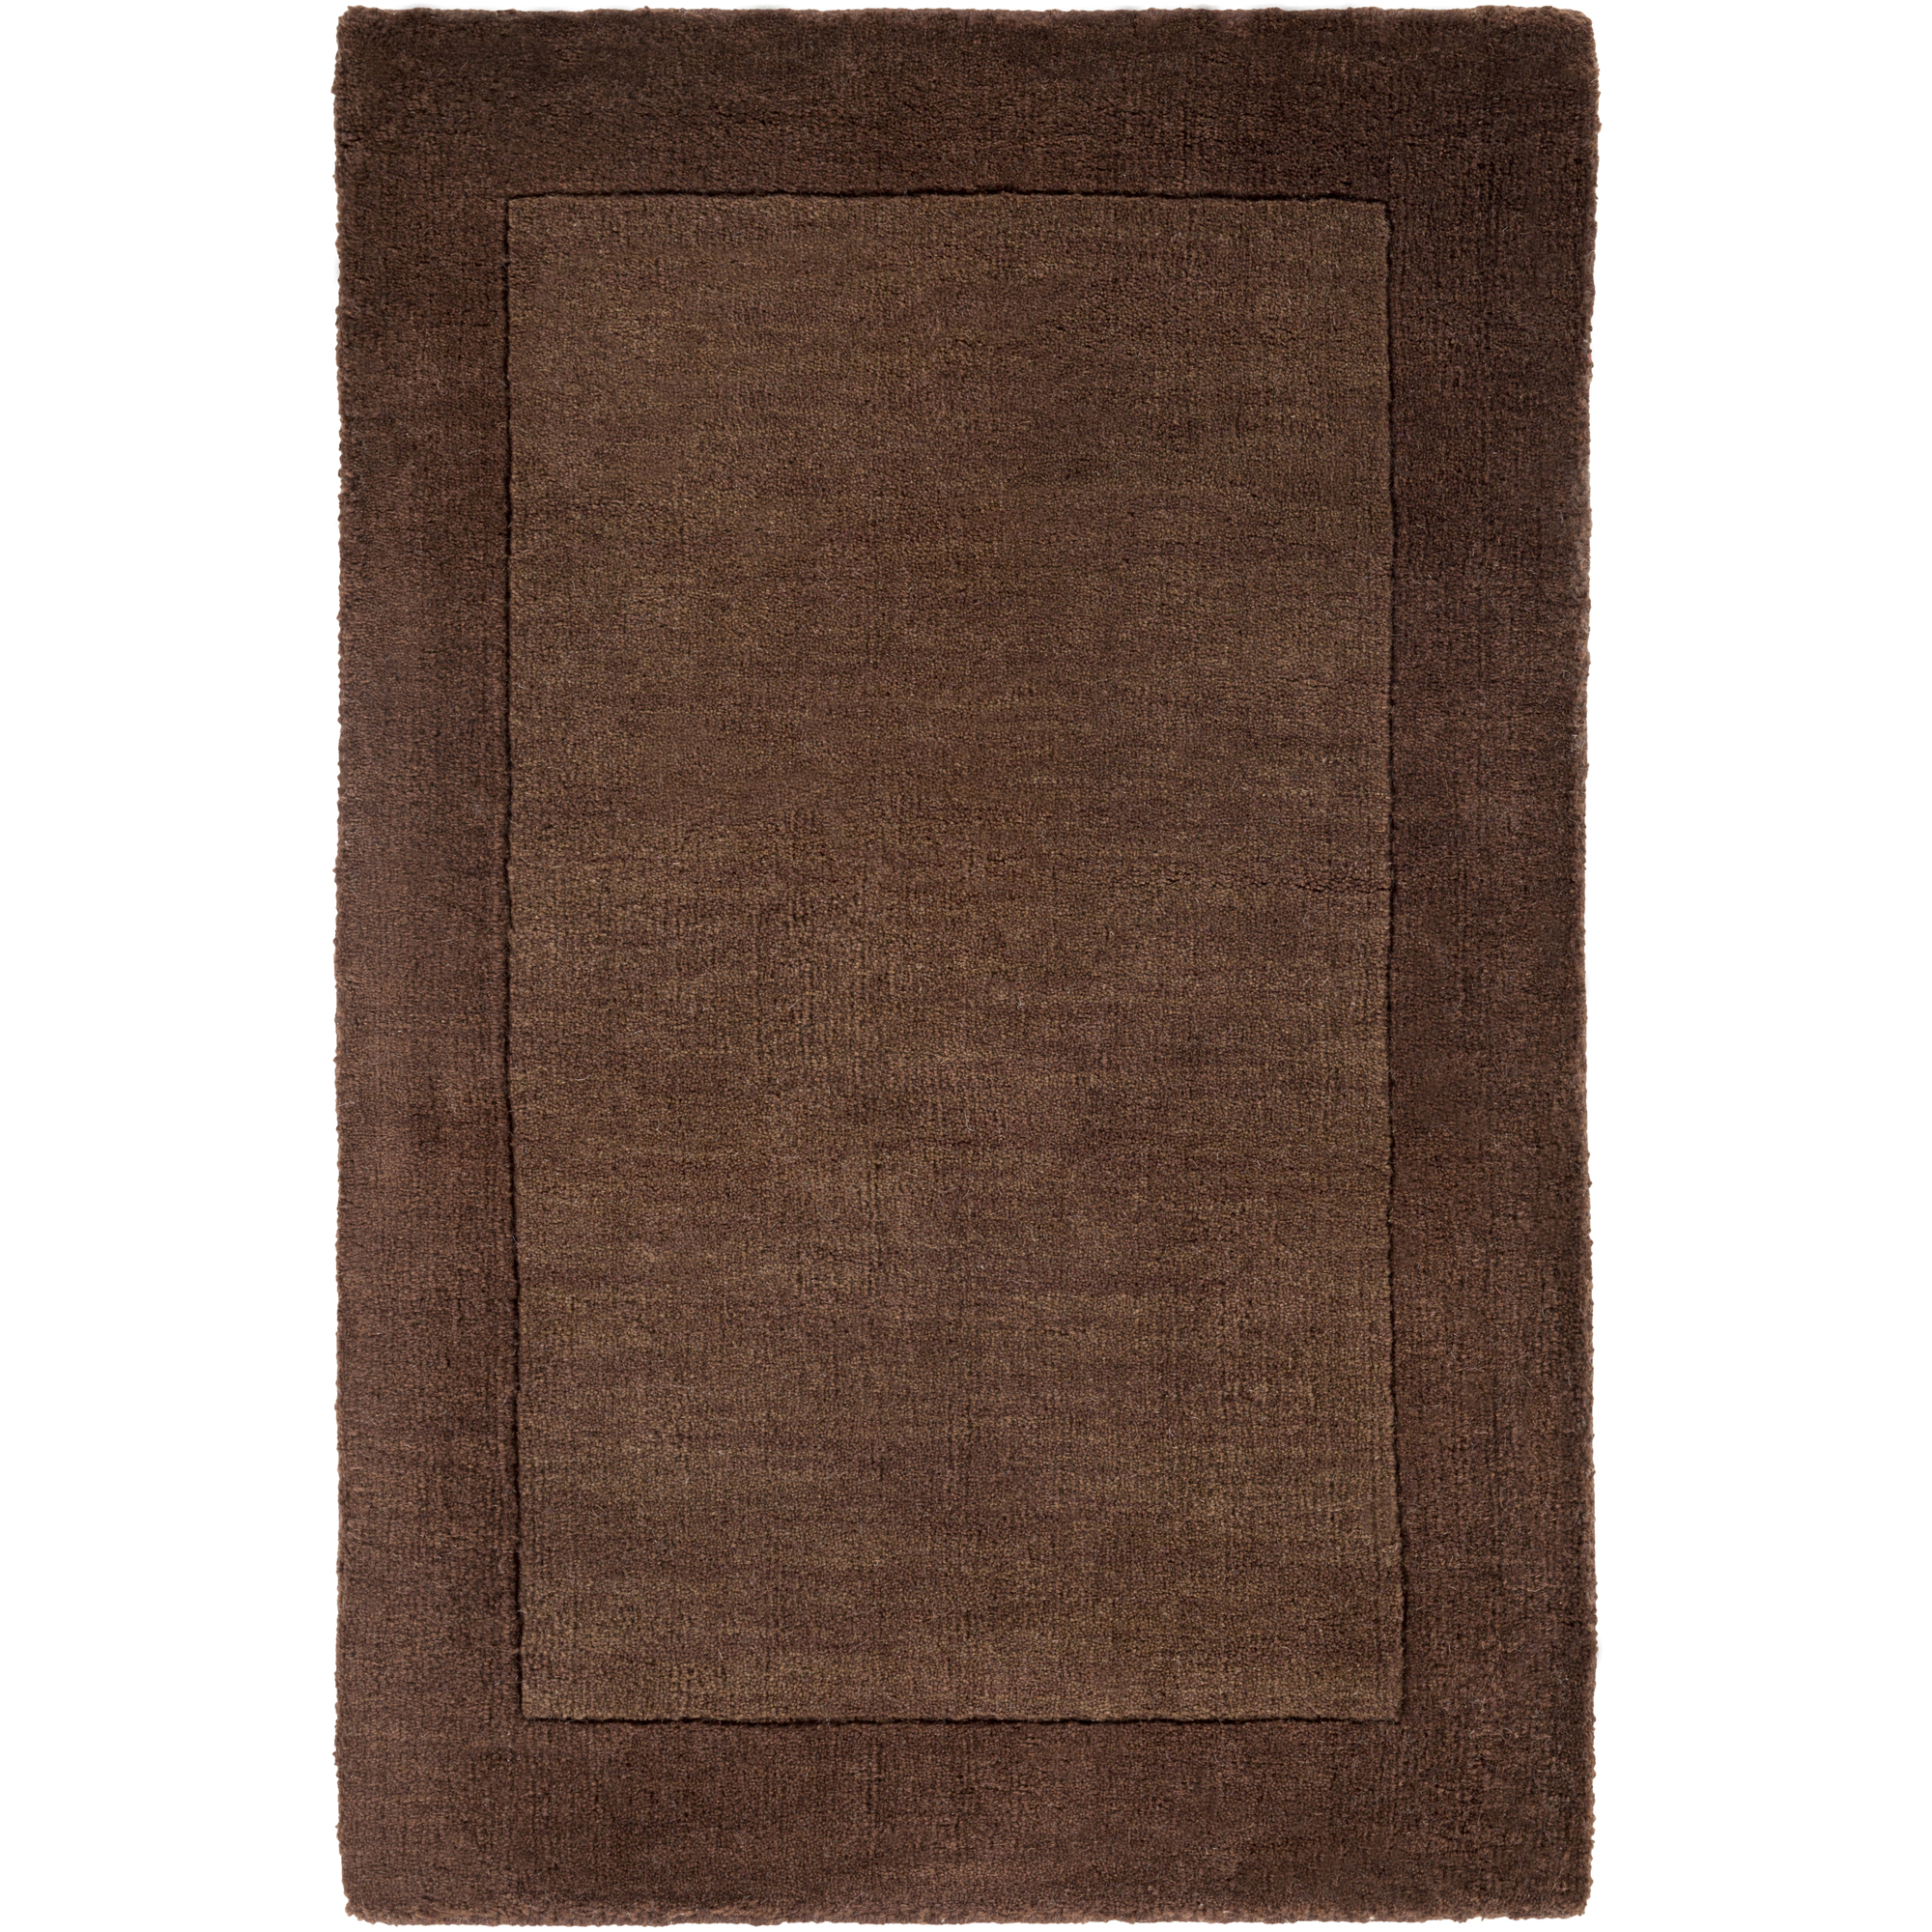 Art of Knot Foxcroft 2' x 3' Rectangular Area Rug